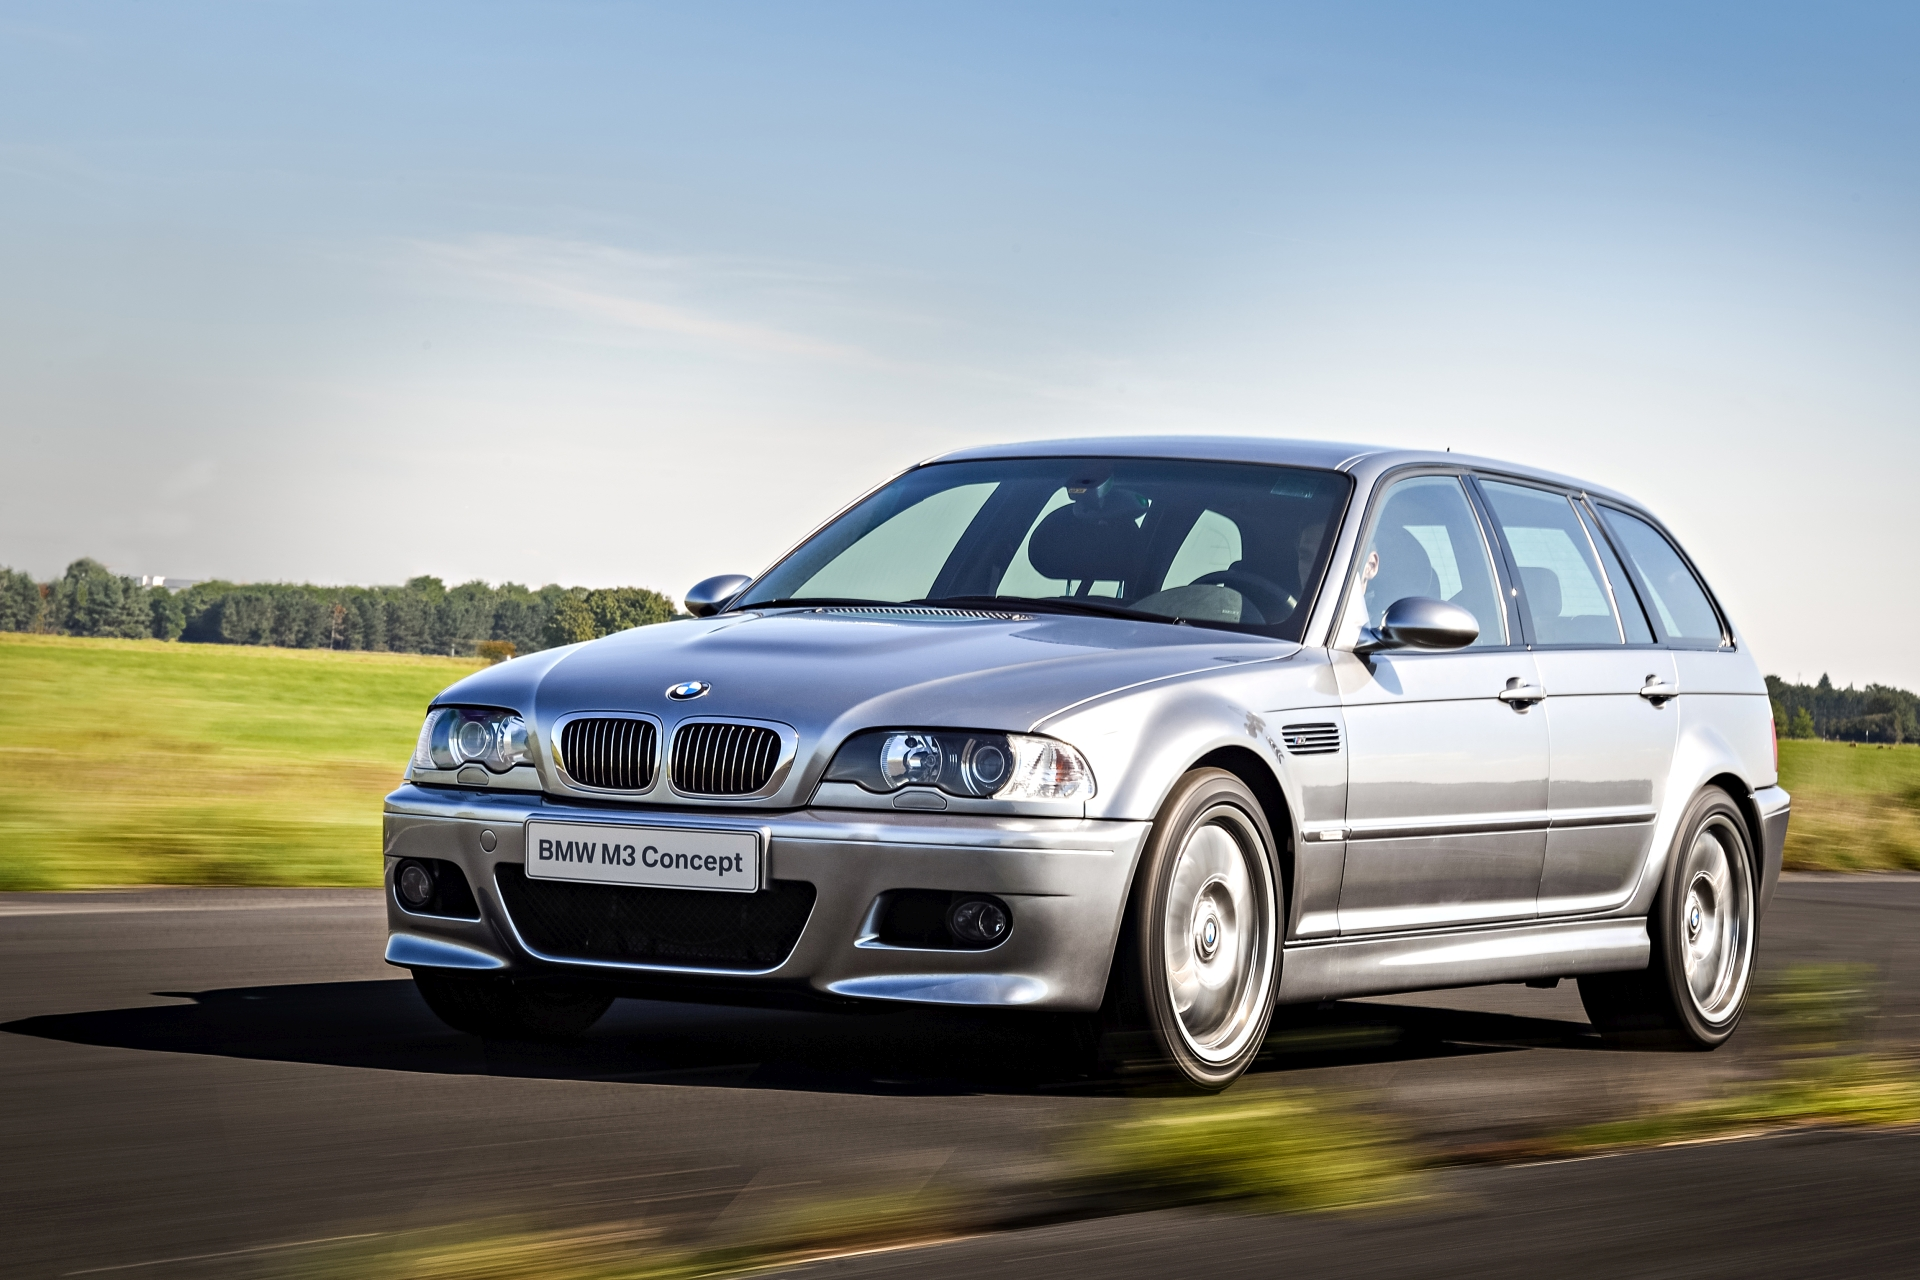 Secret BMW E46 Touring